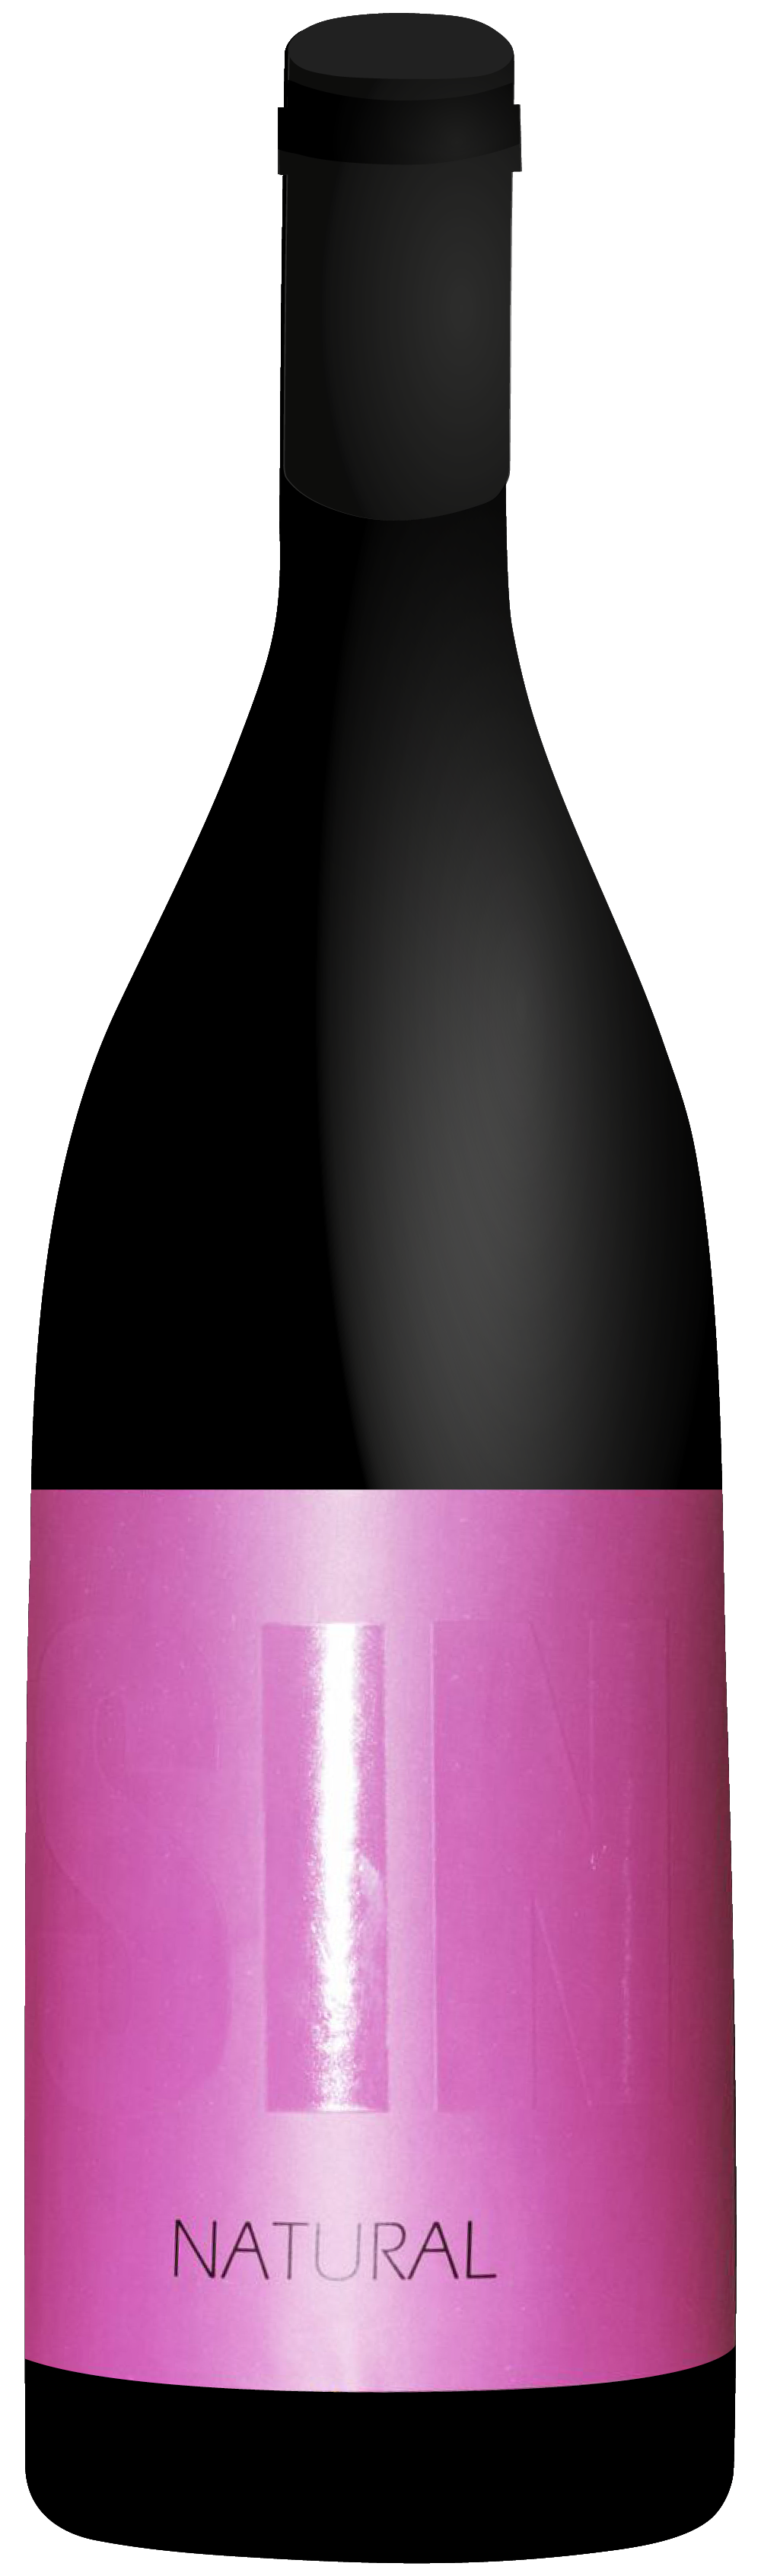 the natural wine company club june 2020 spain sin sin